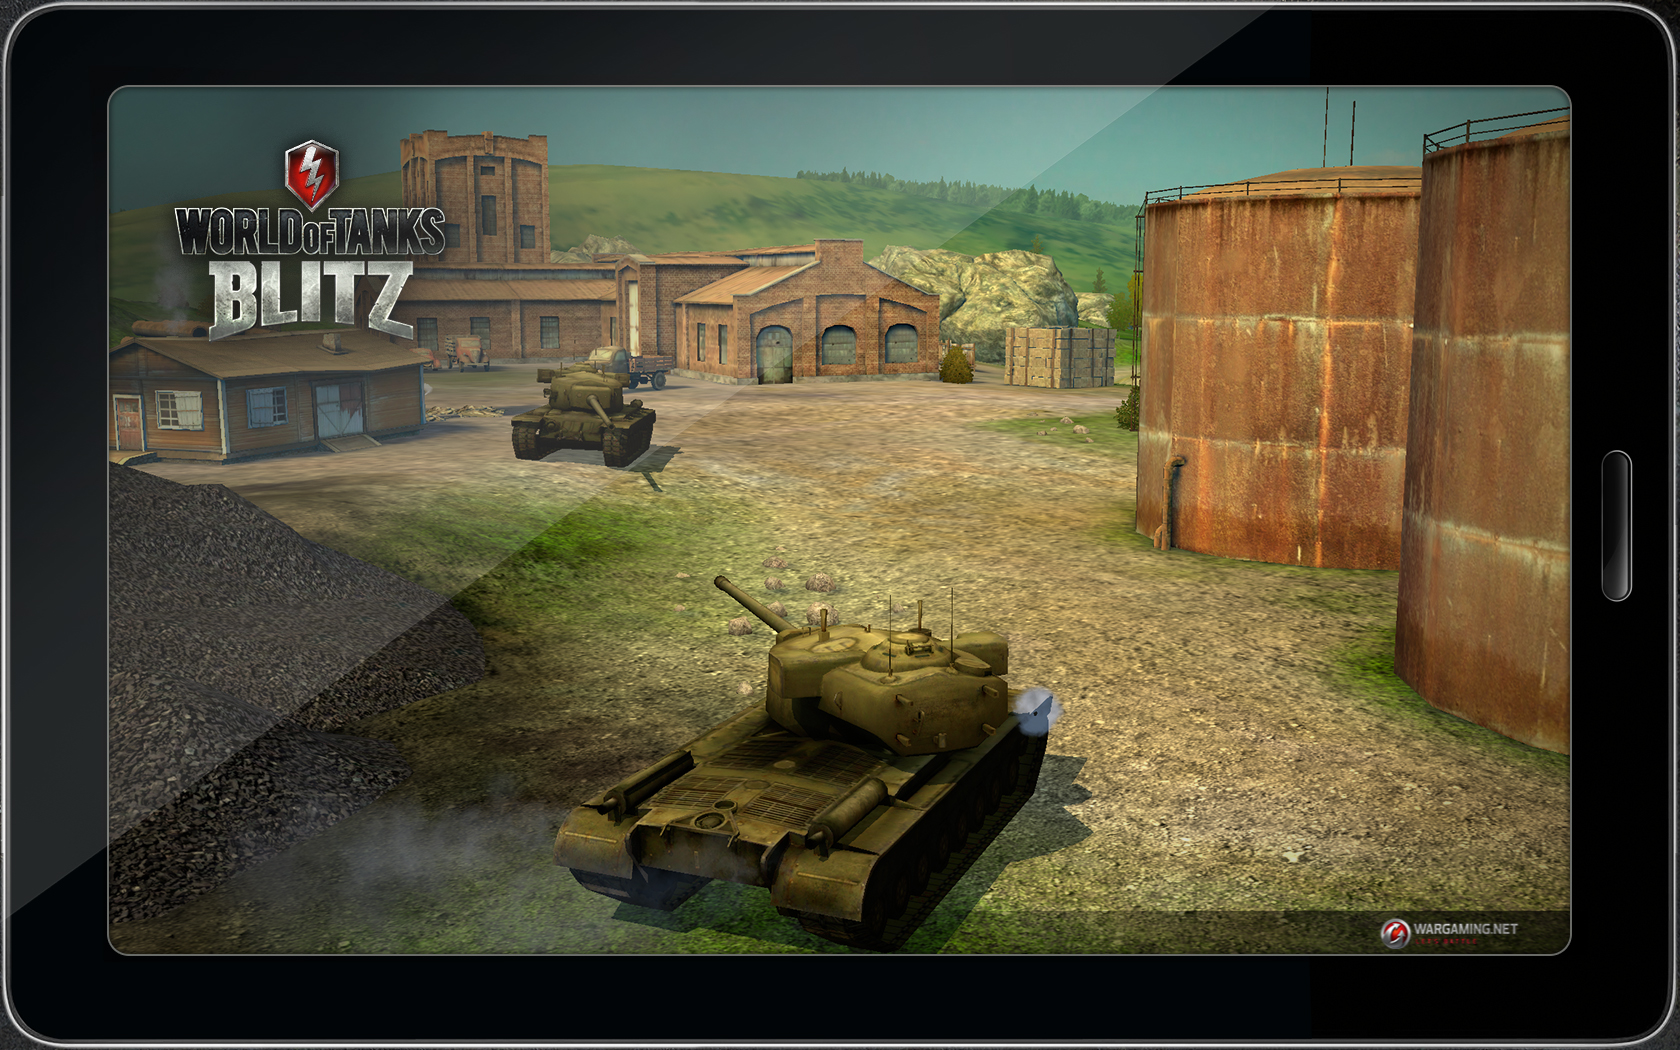 World of tanks моды дамаг индикатор